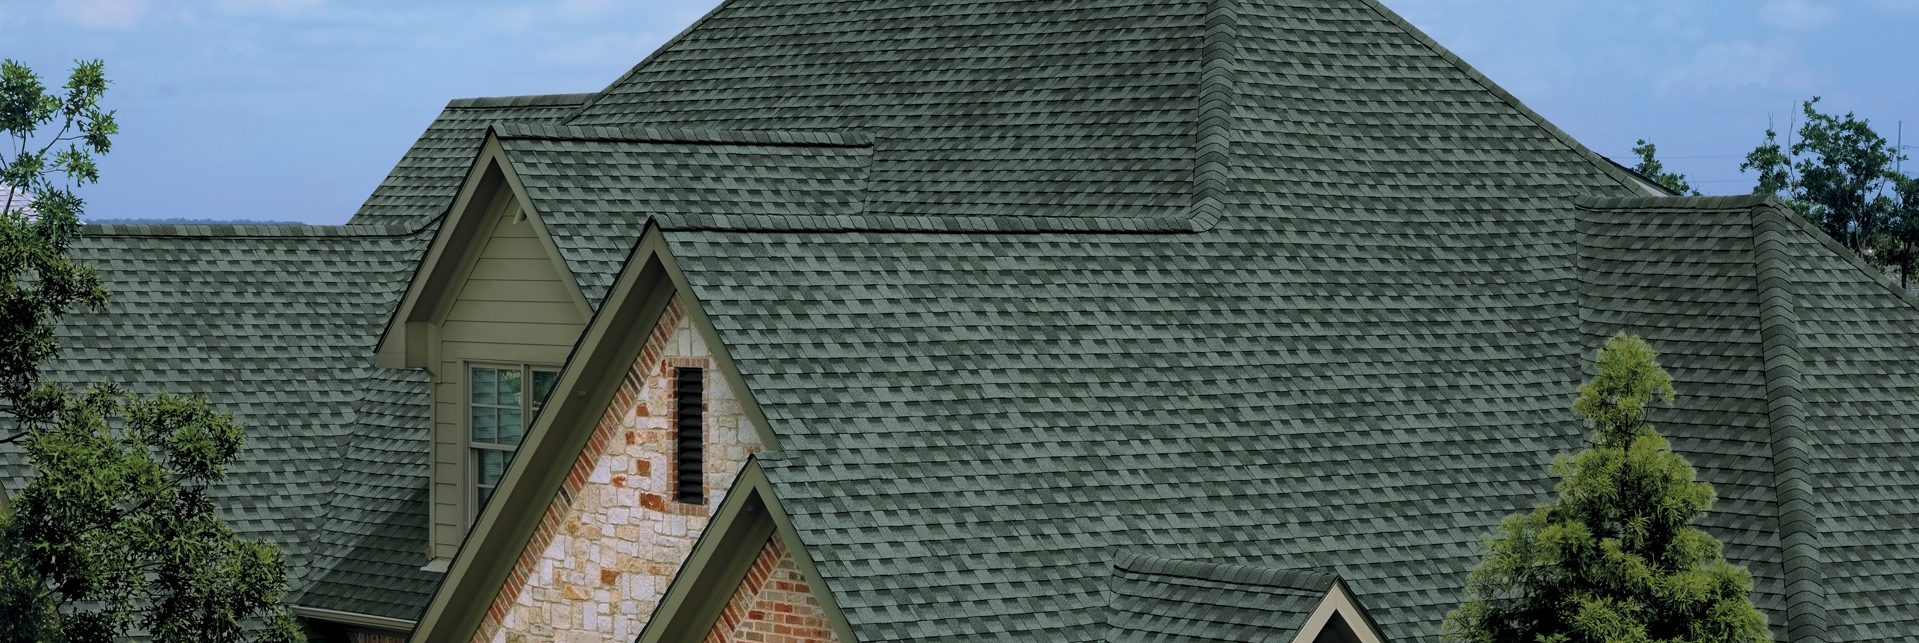 Quality Residential Roofing Services Since 1961